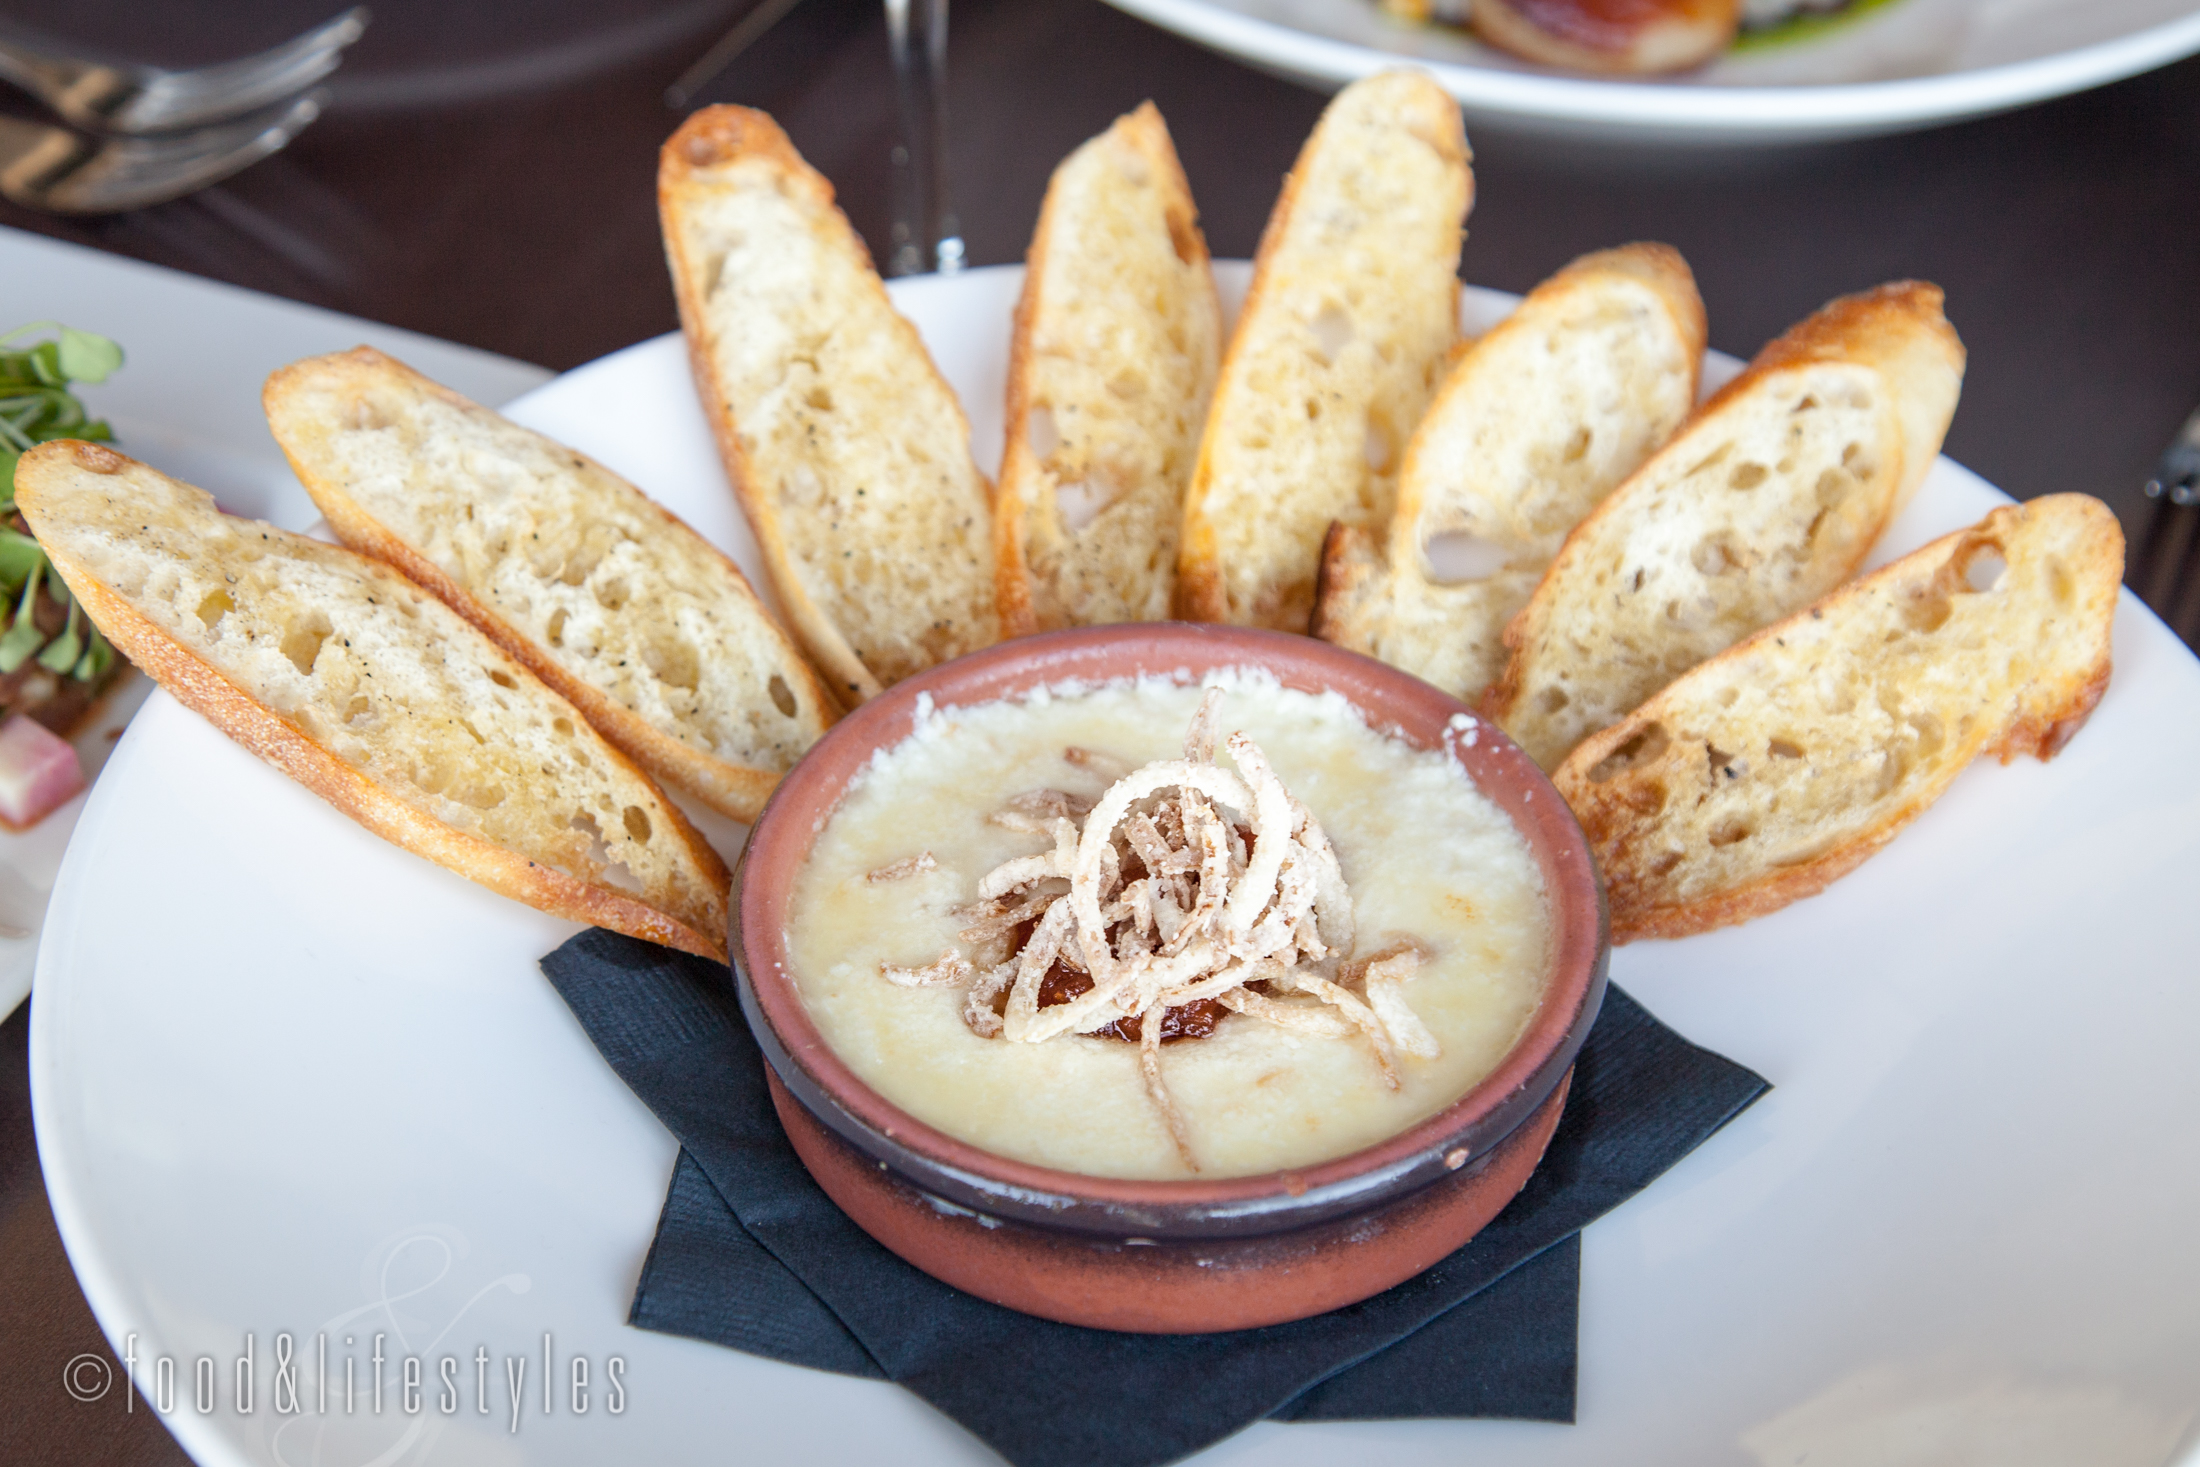 Baked goat cheese fondue with fried shallots and crostini